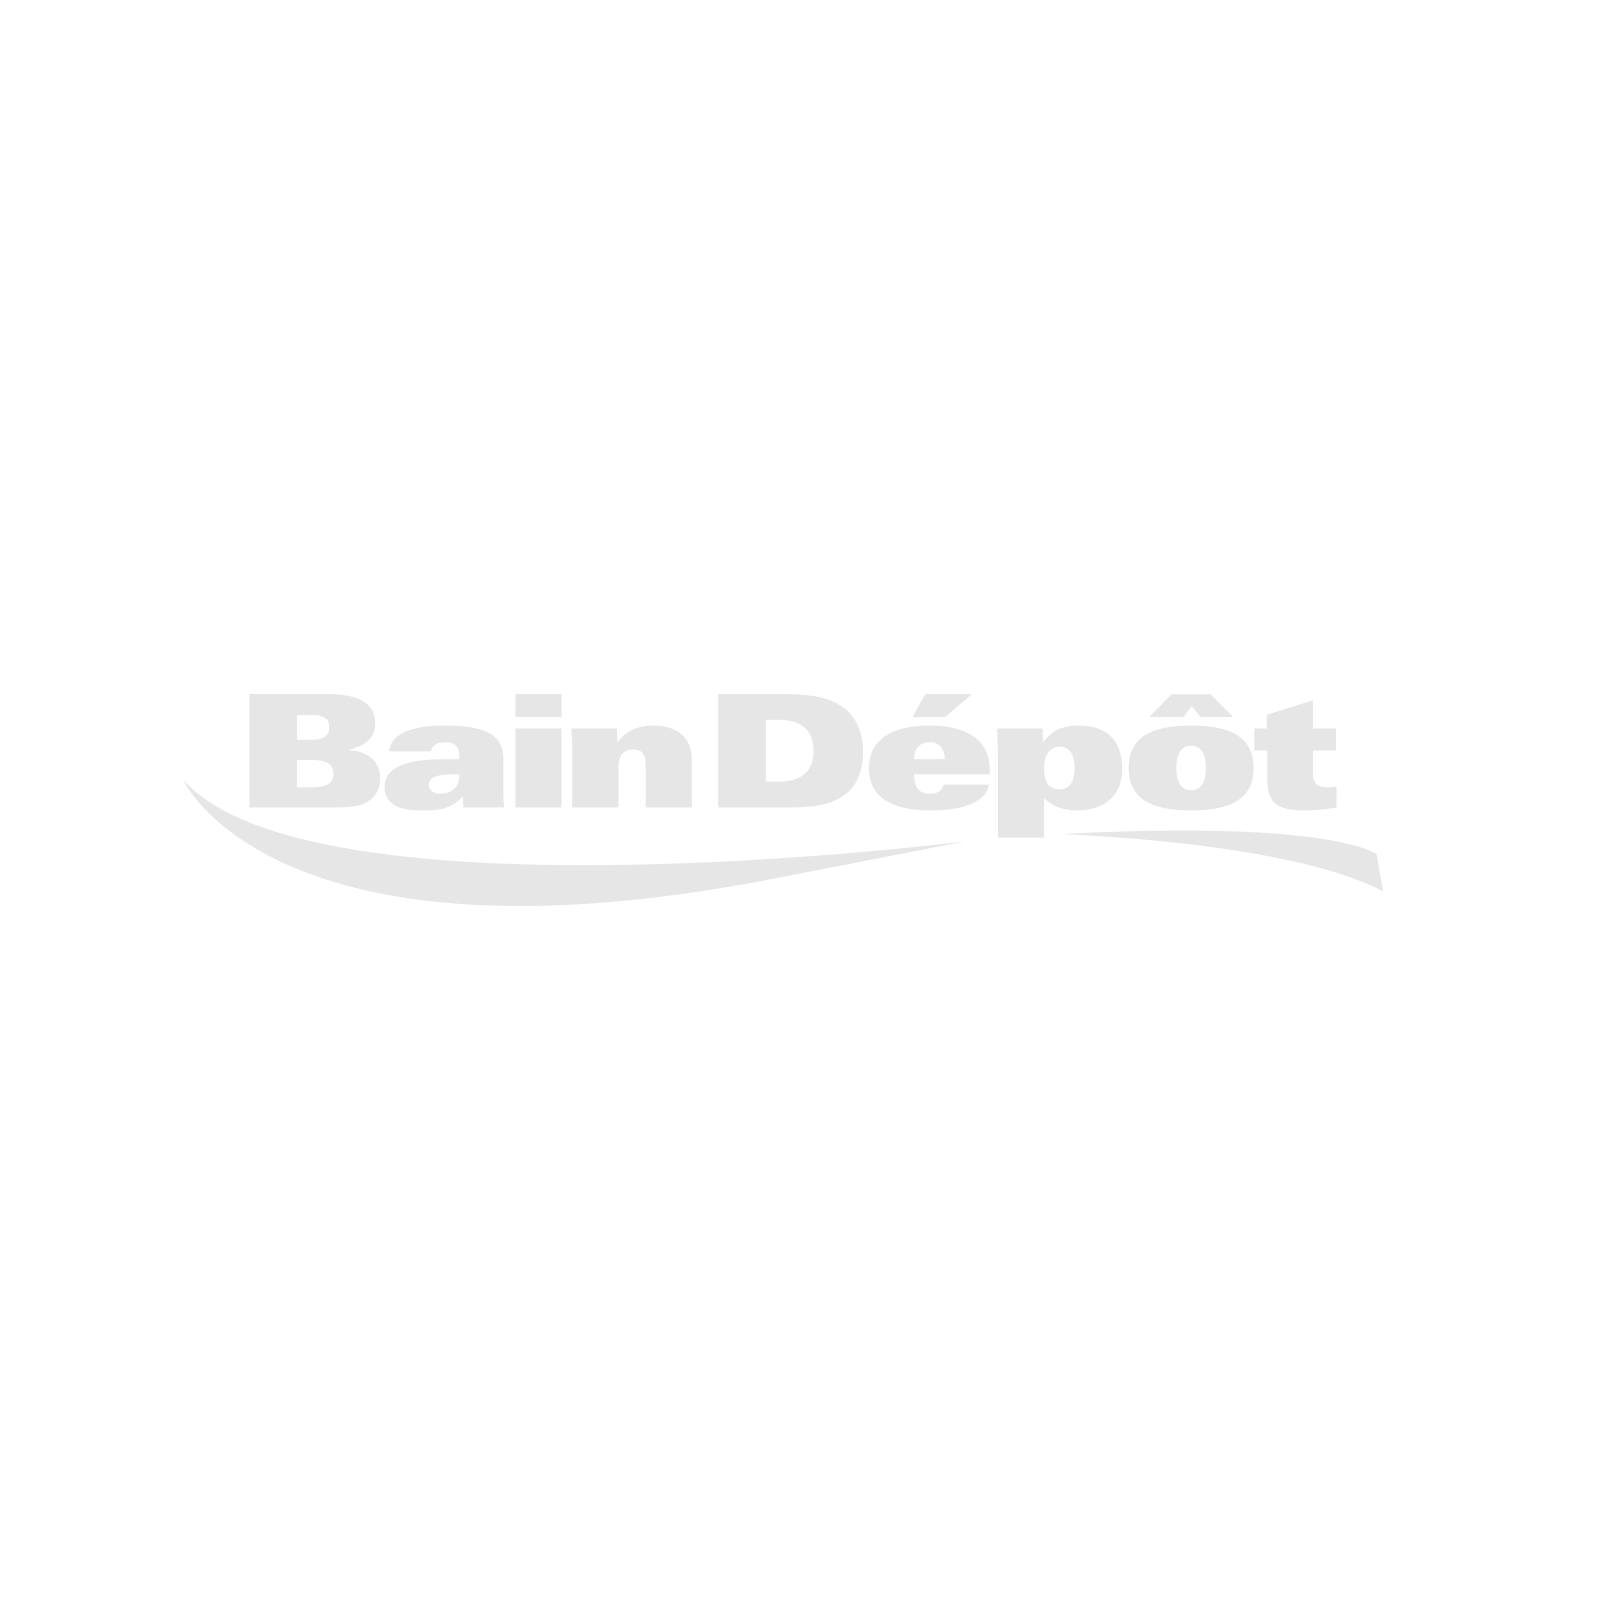 DELTA 2-in-1 Shower faucet installation with 5 spray options